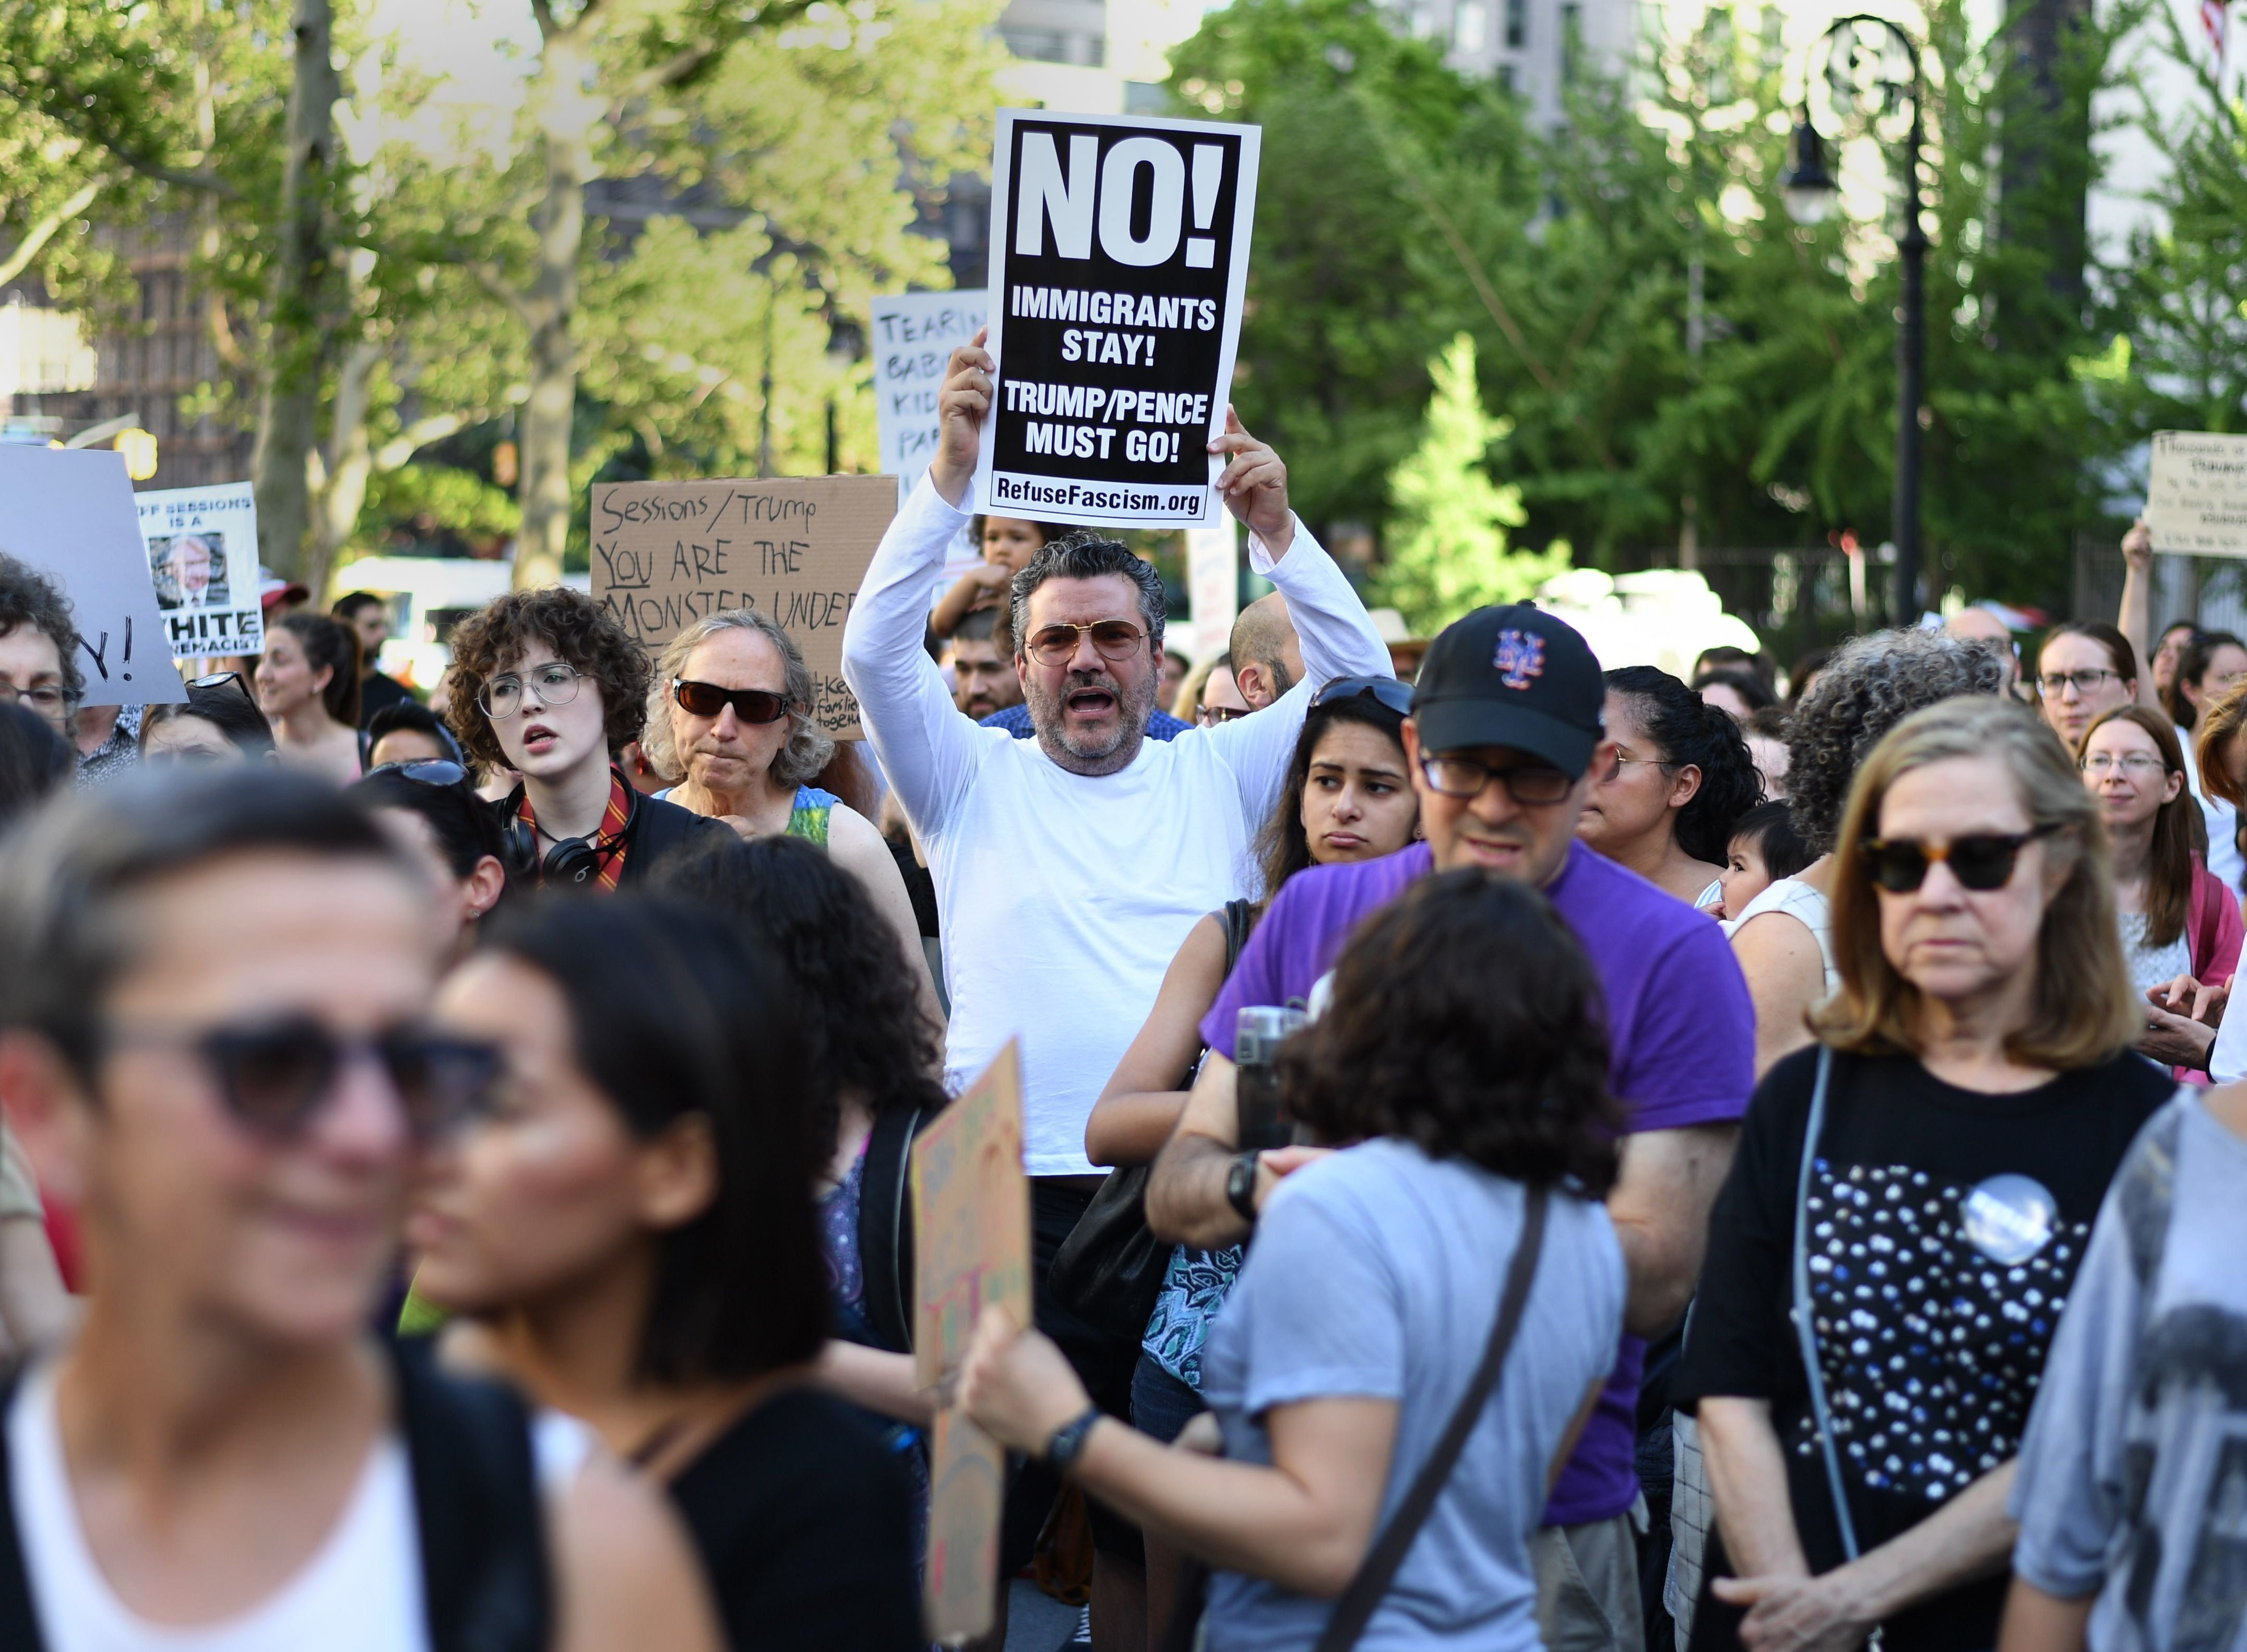 Protesters in New York City demonstrate against the Trump administration's separation of immigrant families.